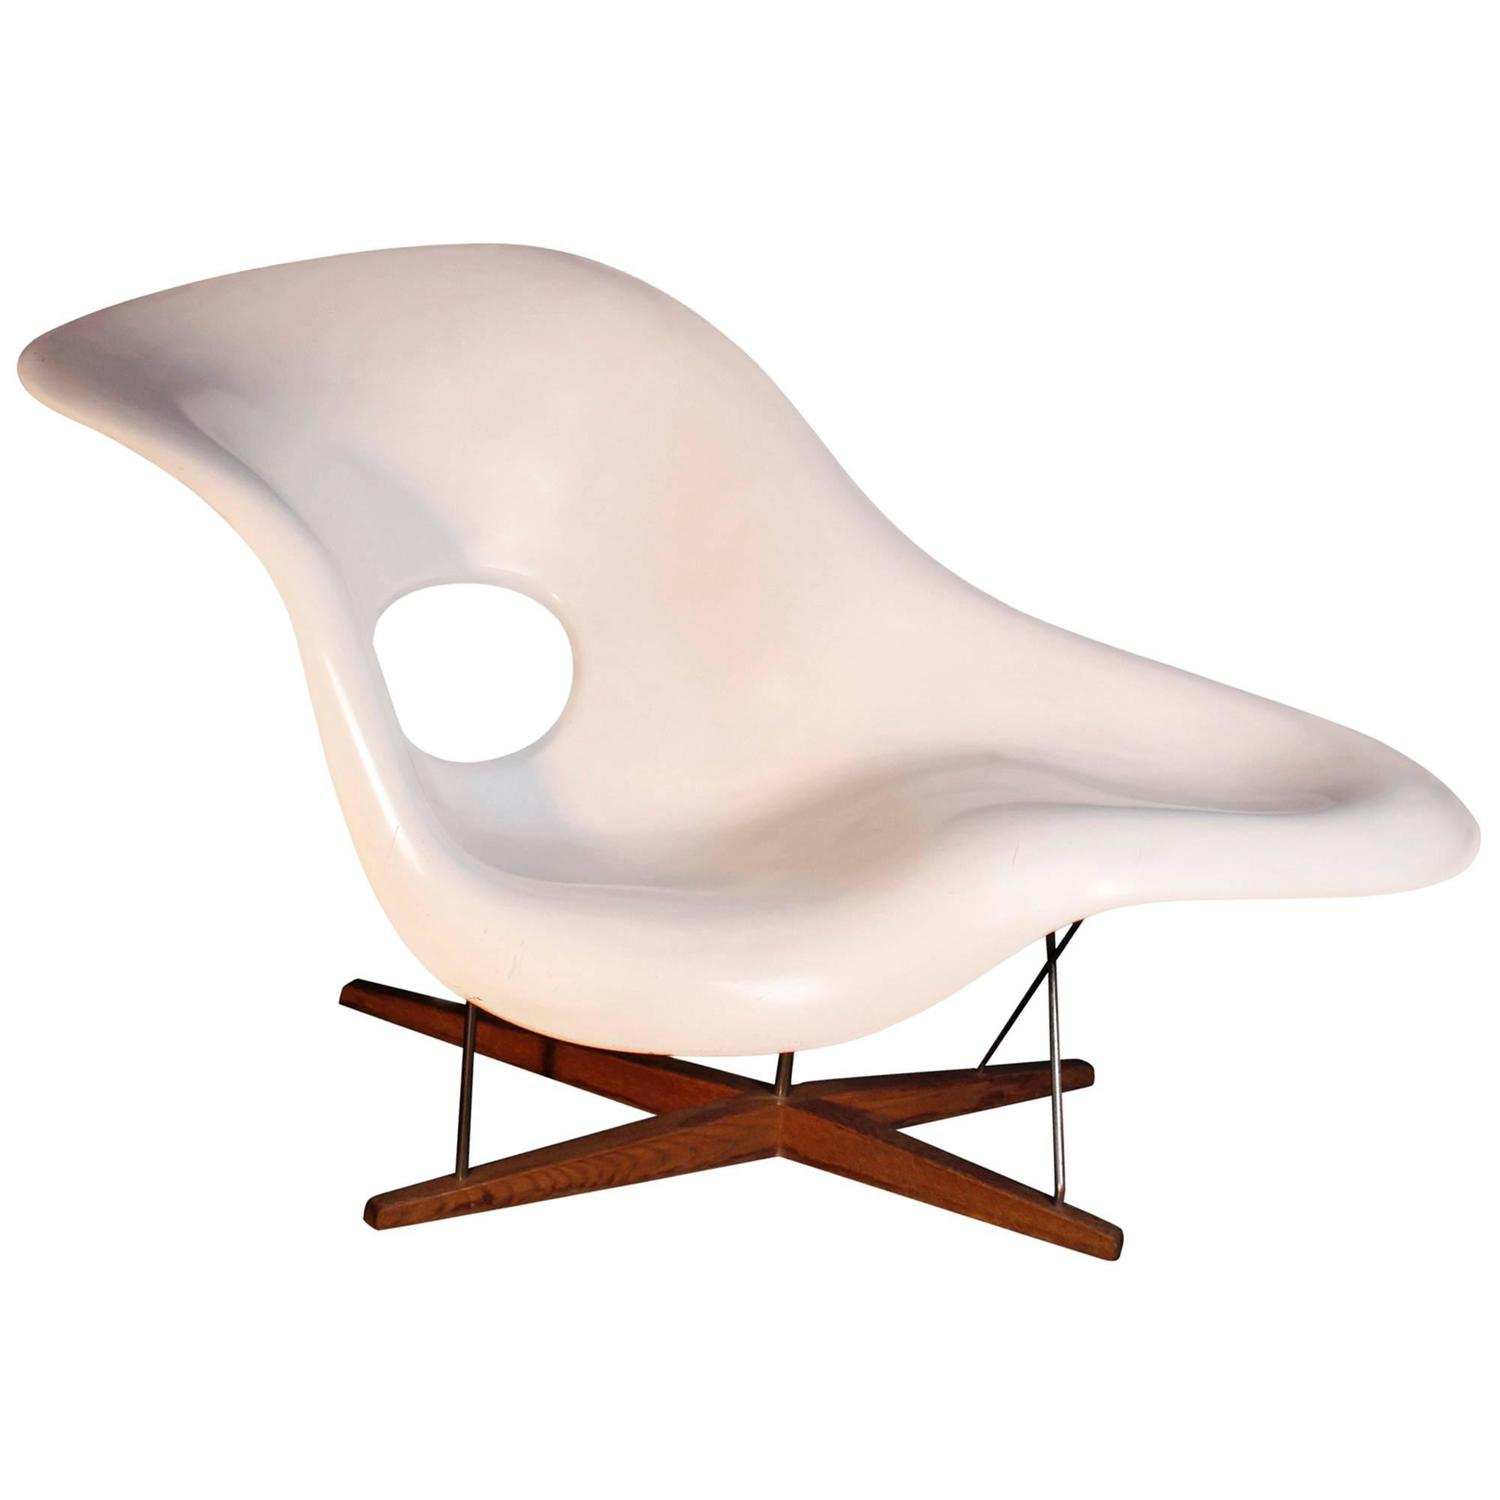 La chaise charles eames chaise longue for sale at 1stdibs for Eames chaise